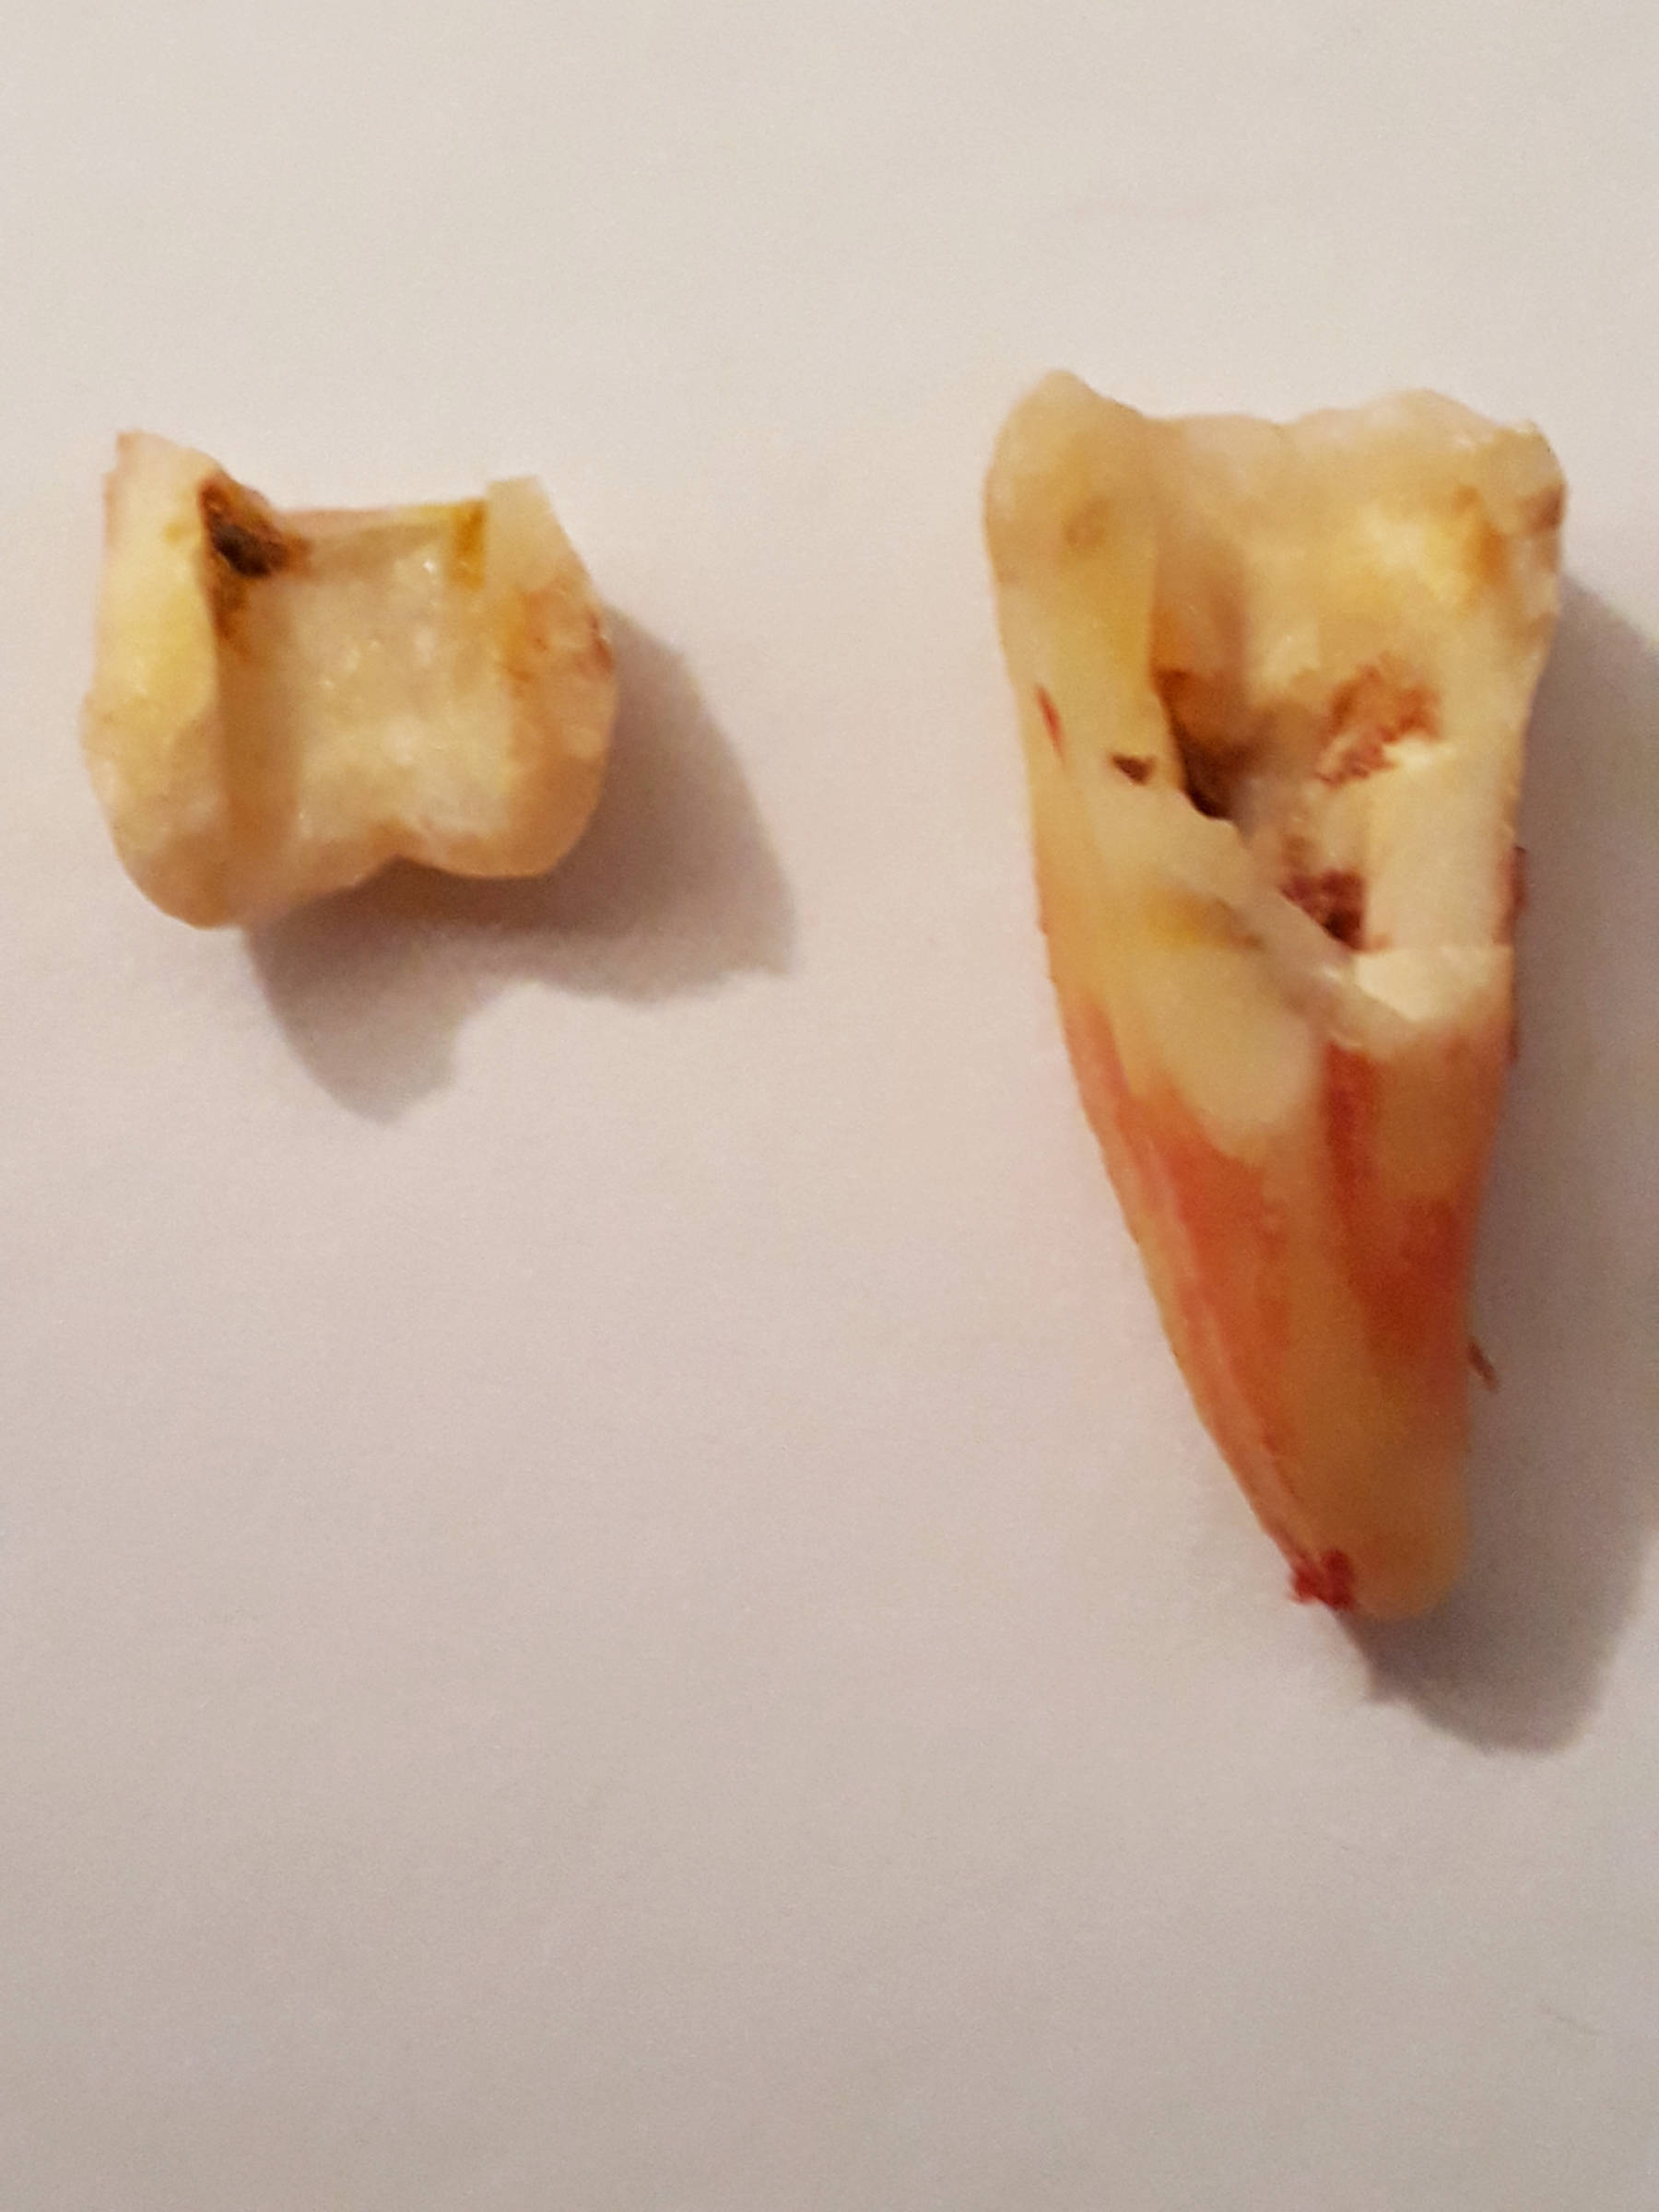 Tooth Post Extraction